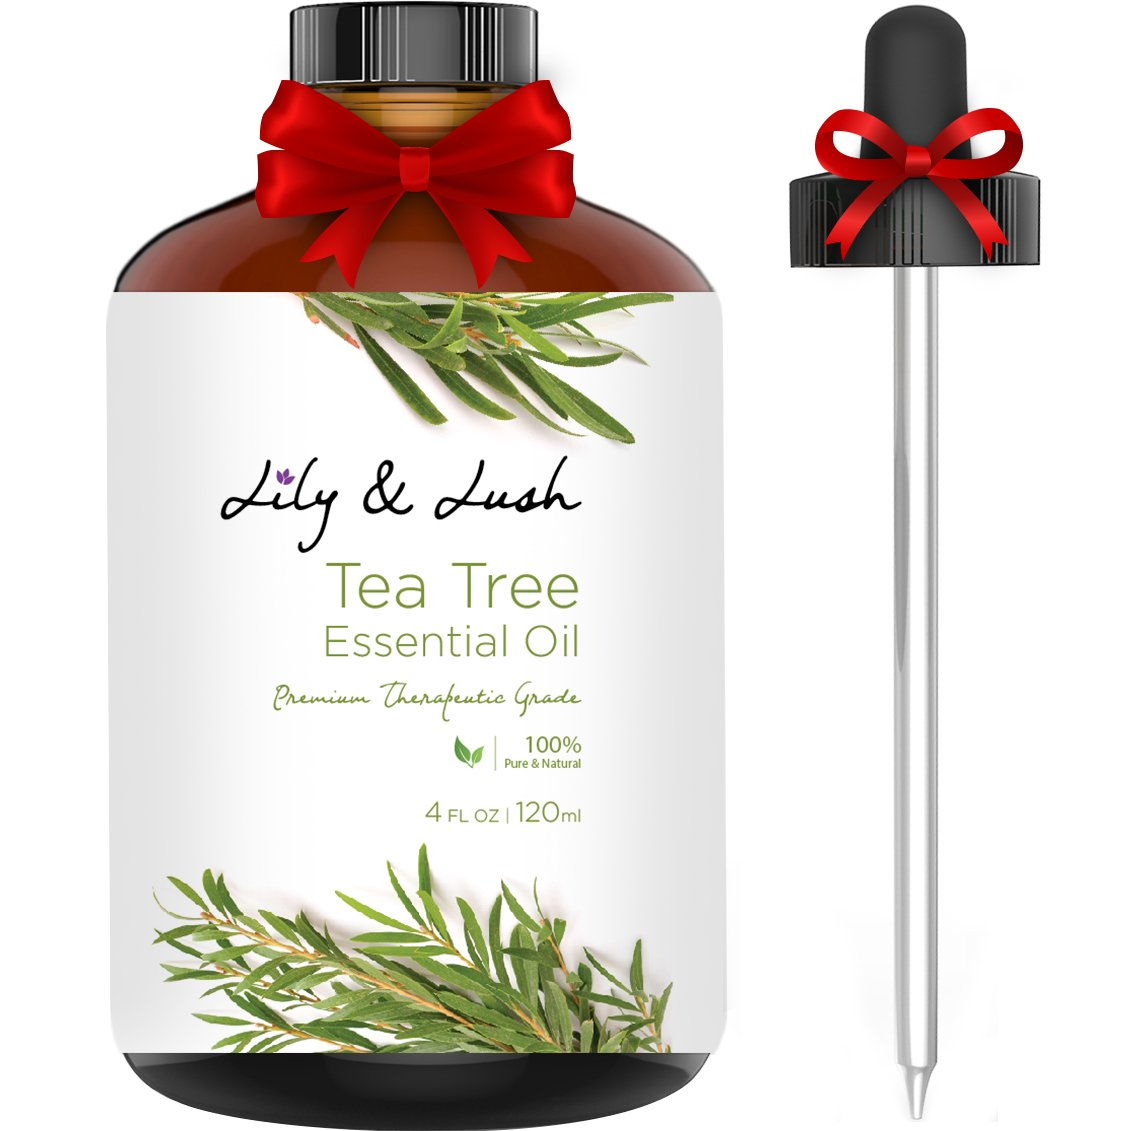 Lily & Lush XL Bottle 100% Pure Tea Tree Essential Oil | Undiluted, Therapeutic Grade | The Superior Choice for All Natural Acne Relief or to Purify, Cleanse & Renew I 4 fl oz w/Glass Dropper